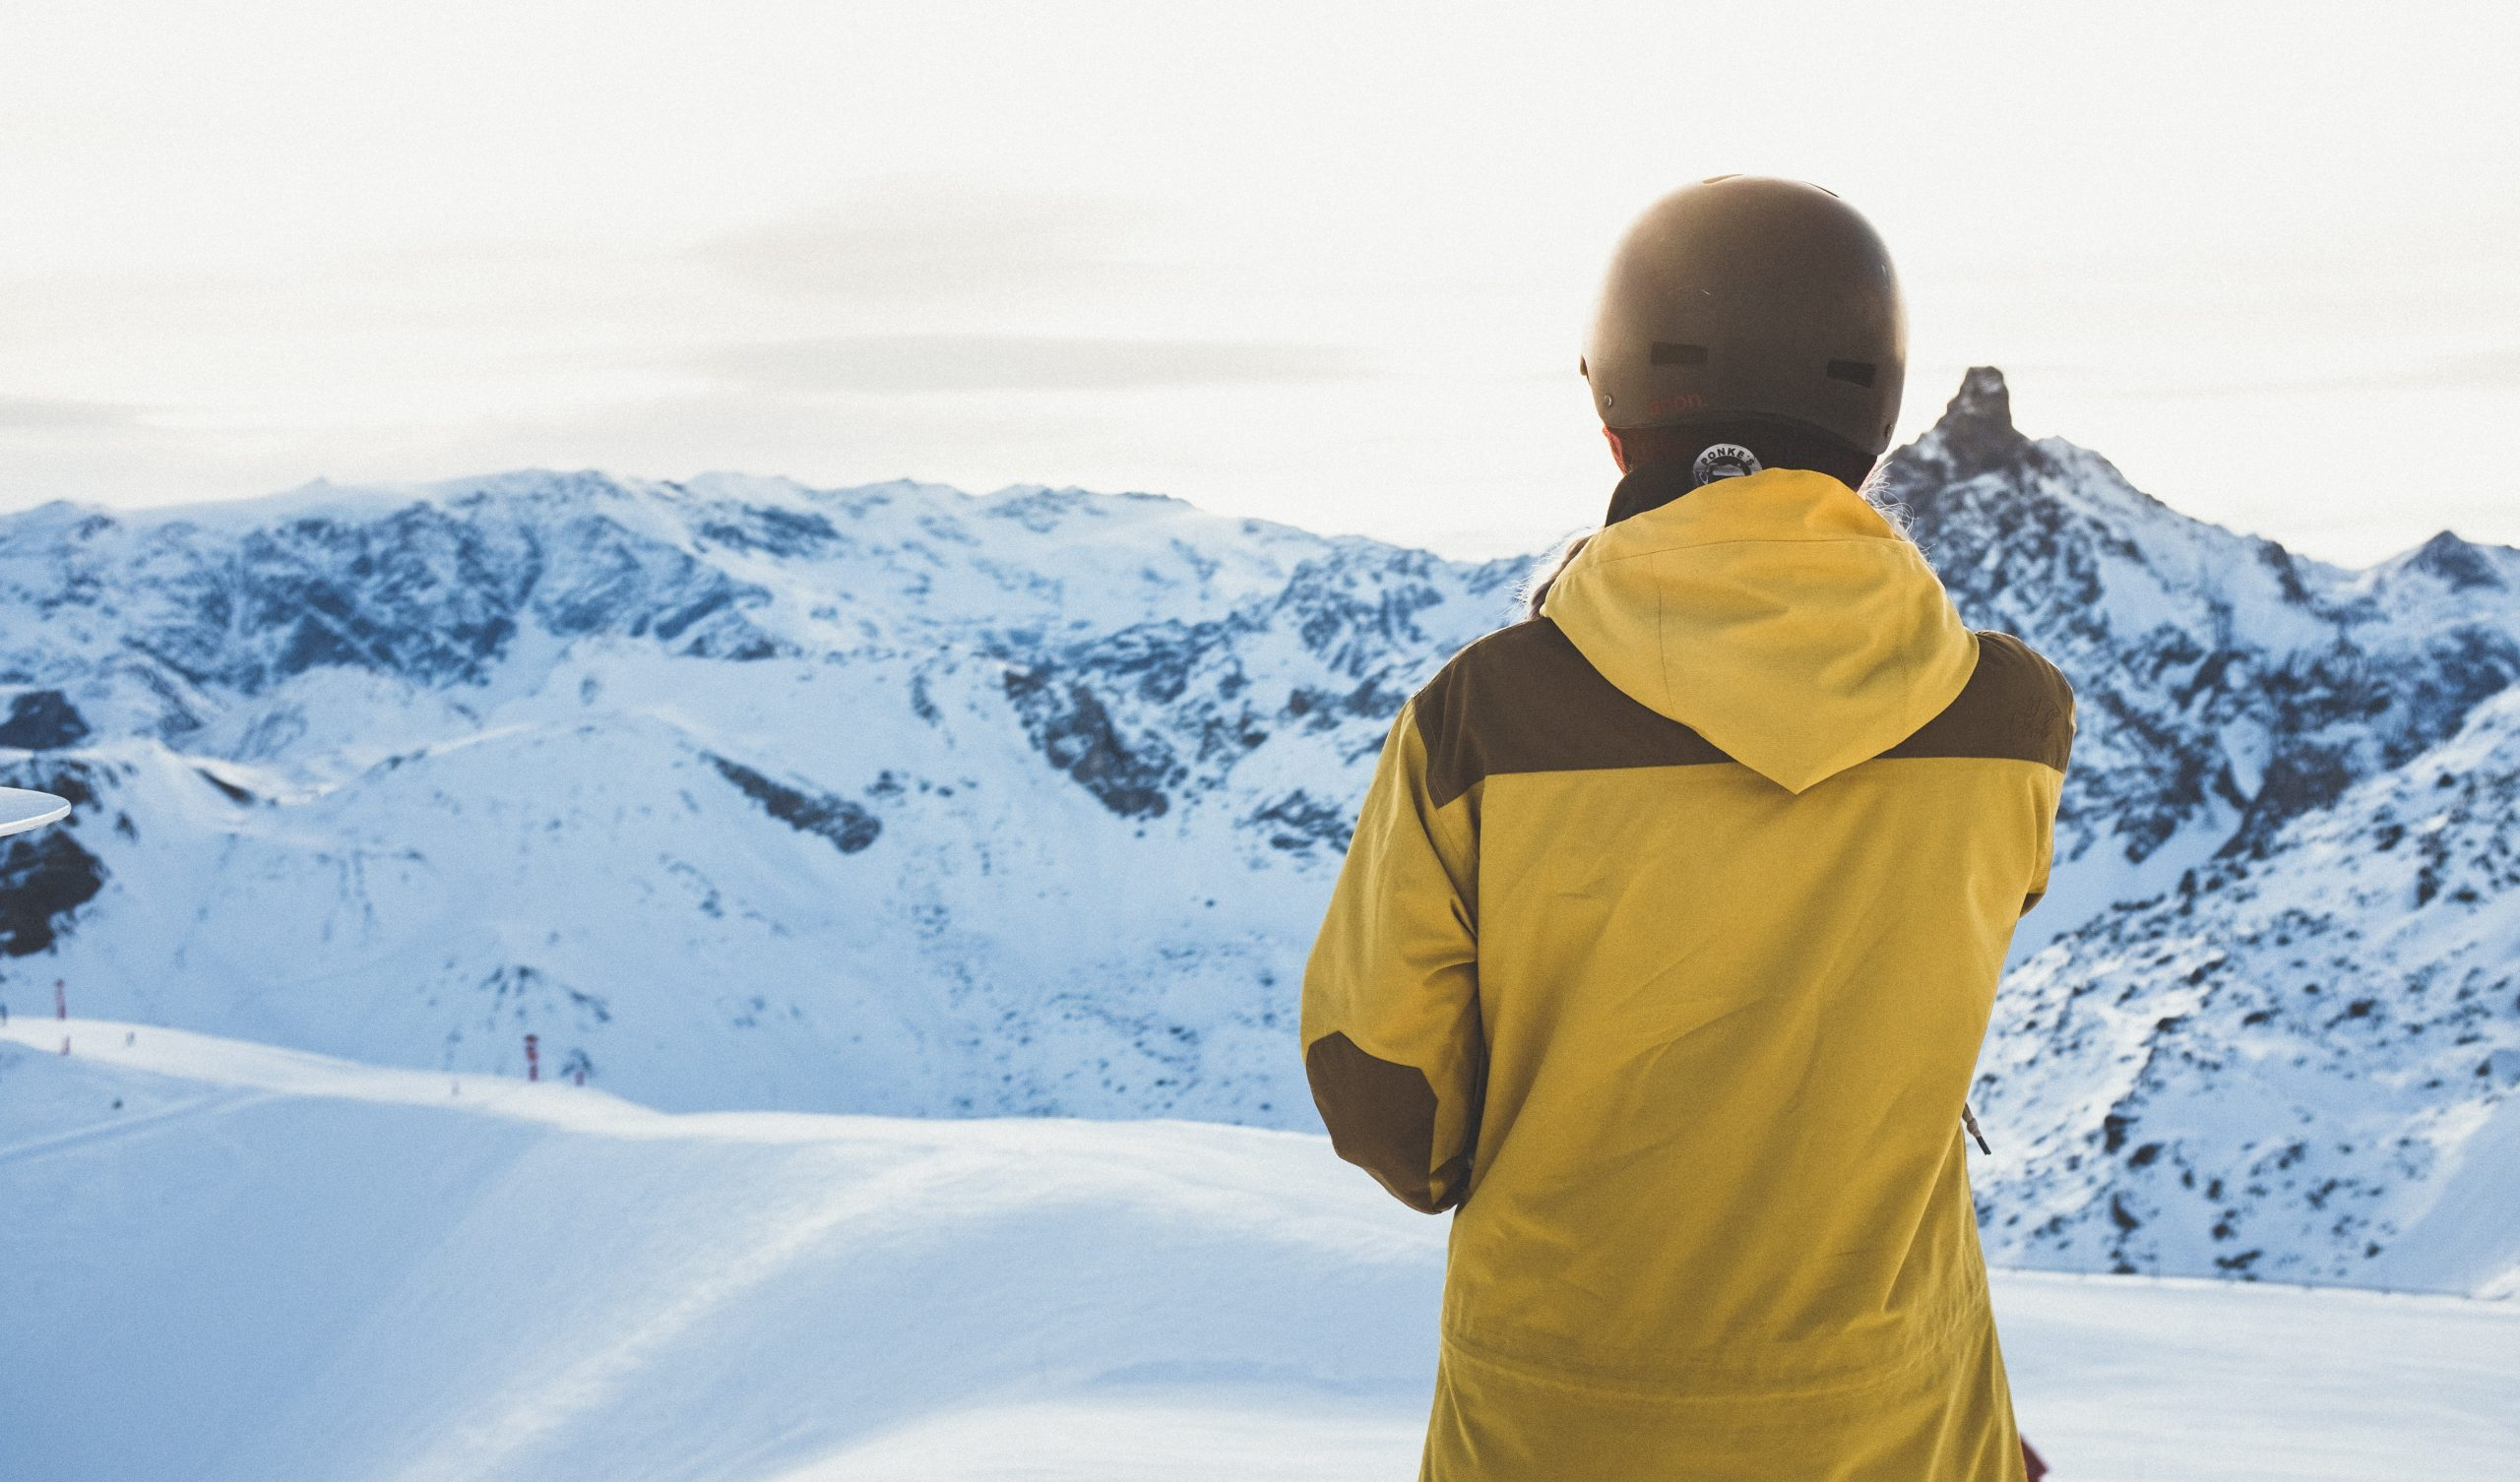 man standing on a snowy mountain during the winter